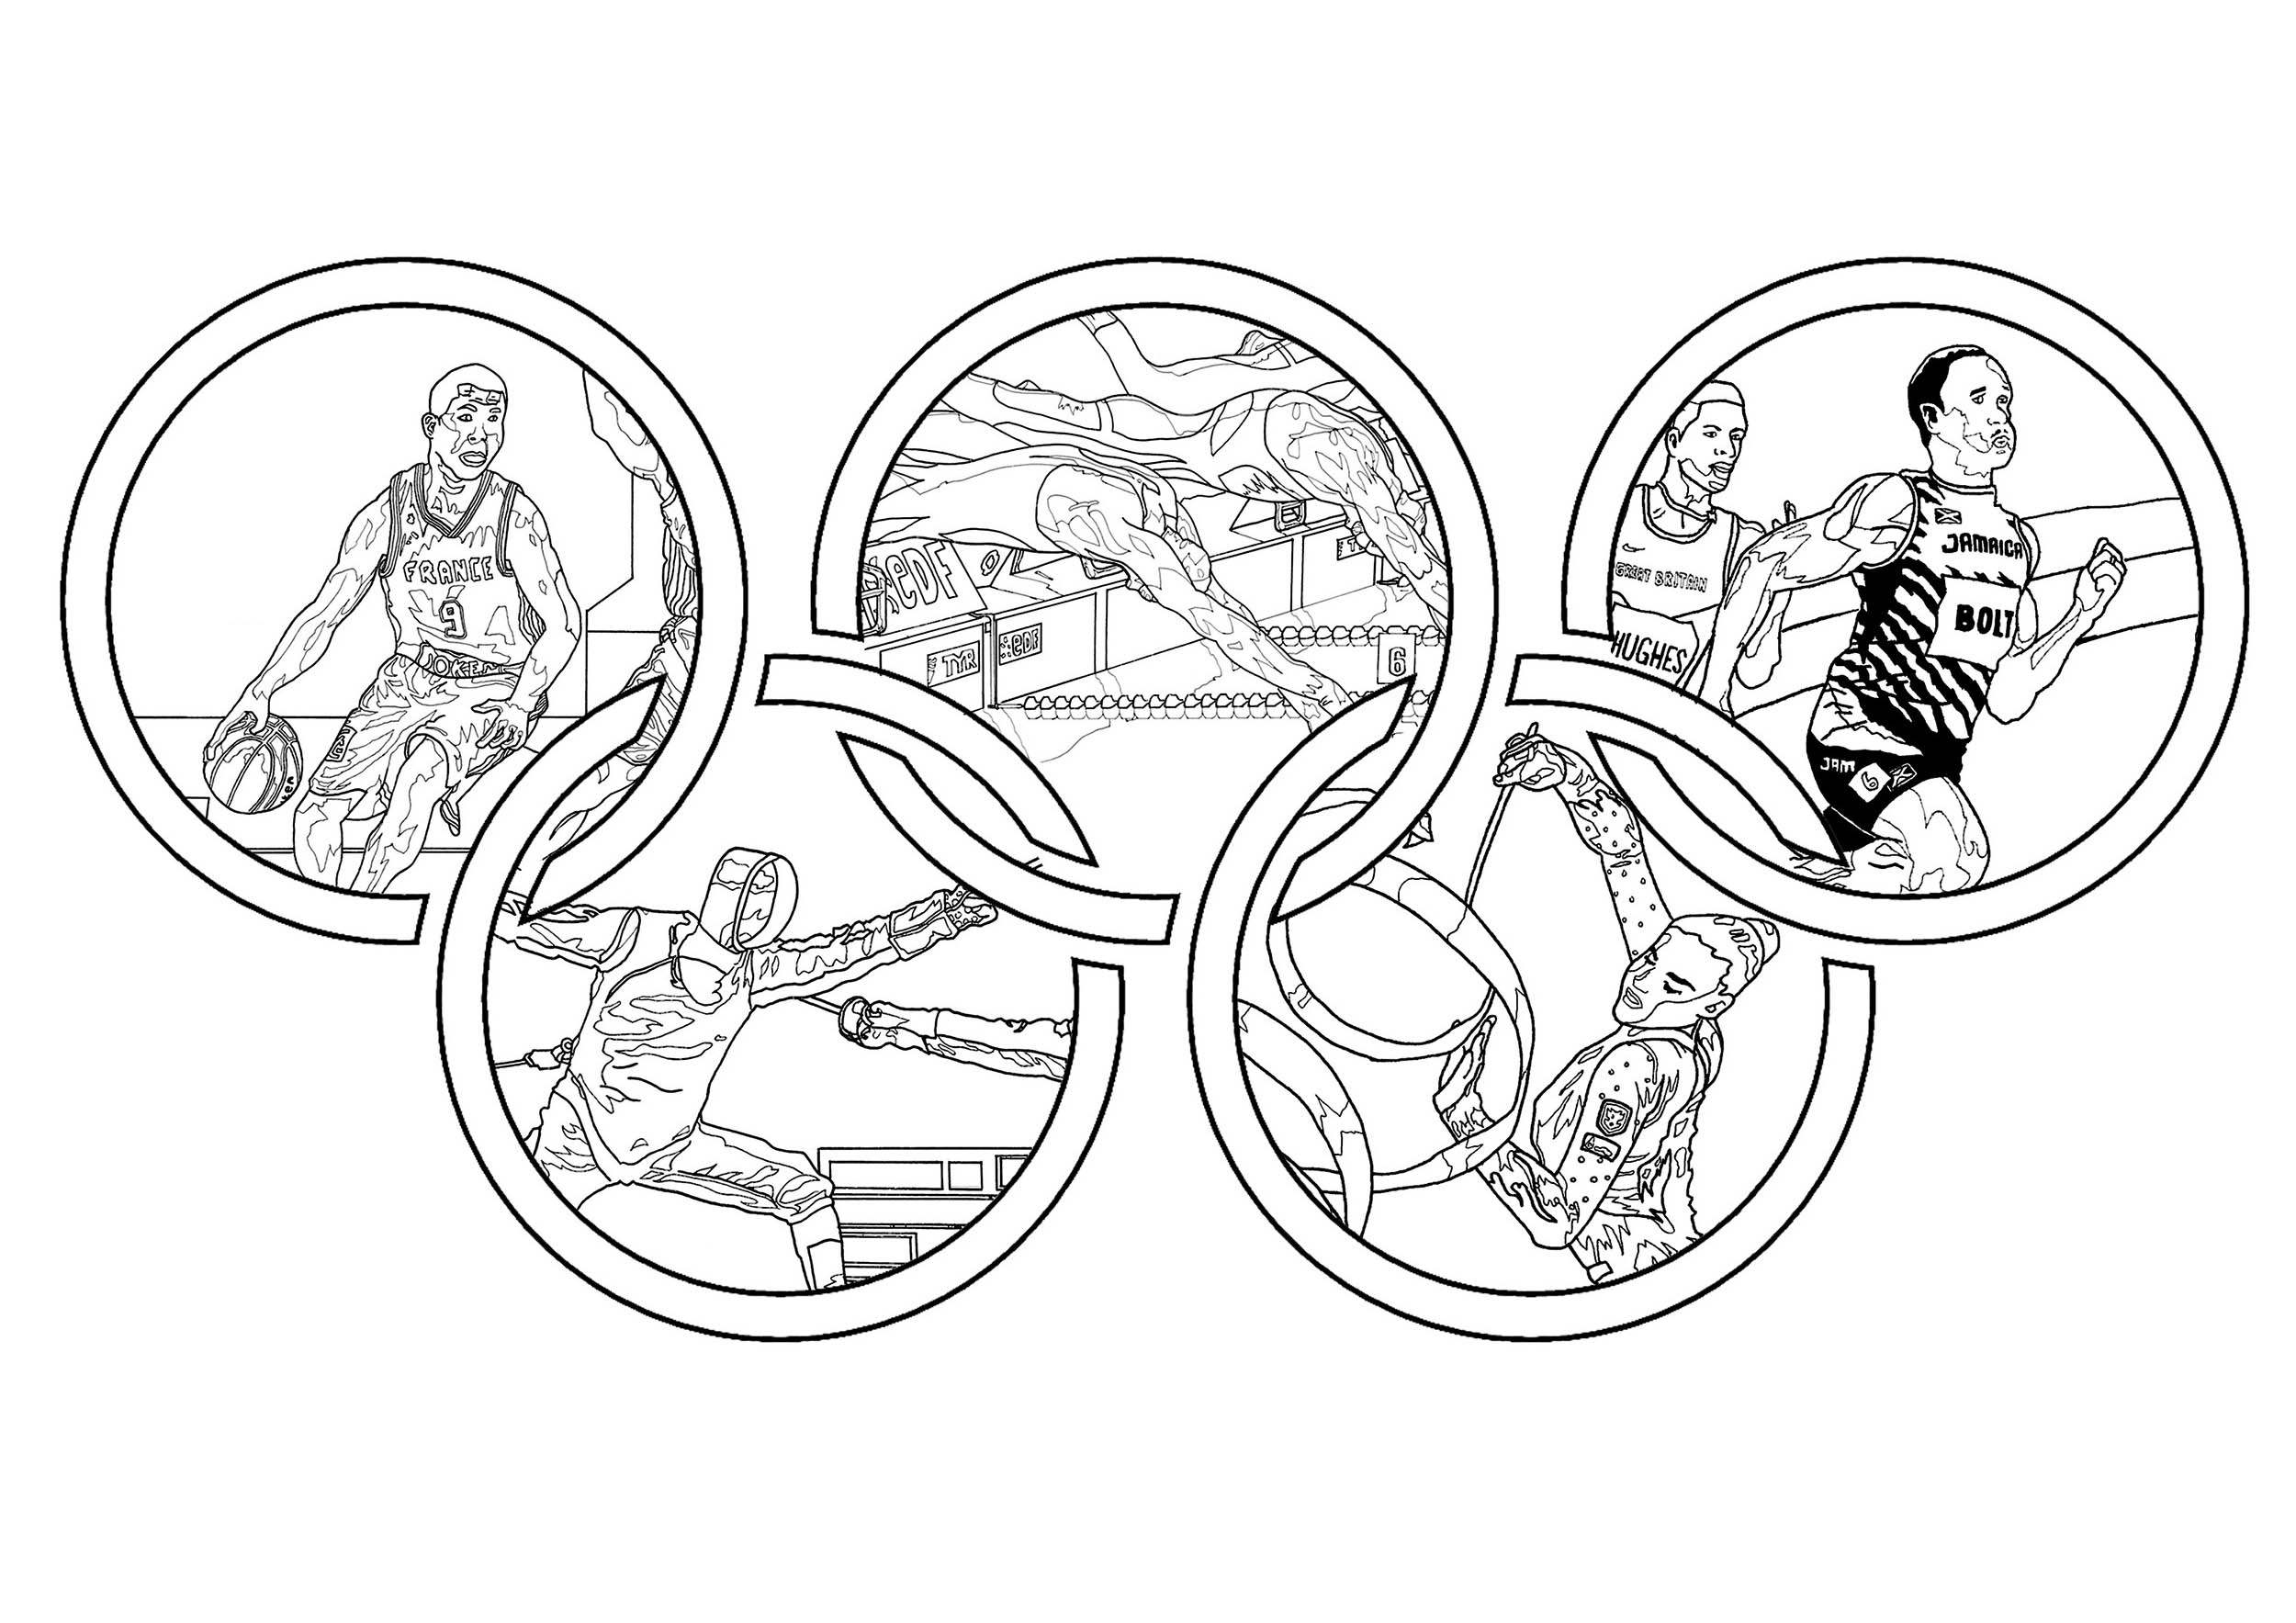 Olympic Games Olympic & Sport Adult Coloring Pages Gallery Of Olympic Swimming Coloring Pages Best Coloring Pages Games Image Printable